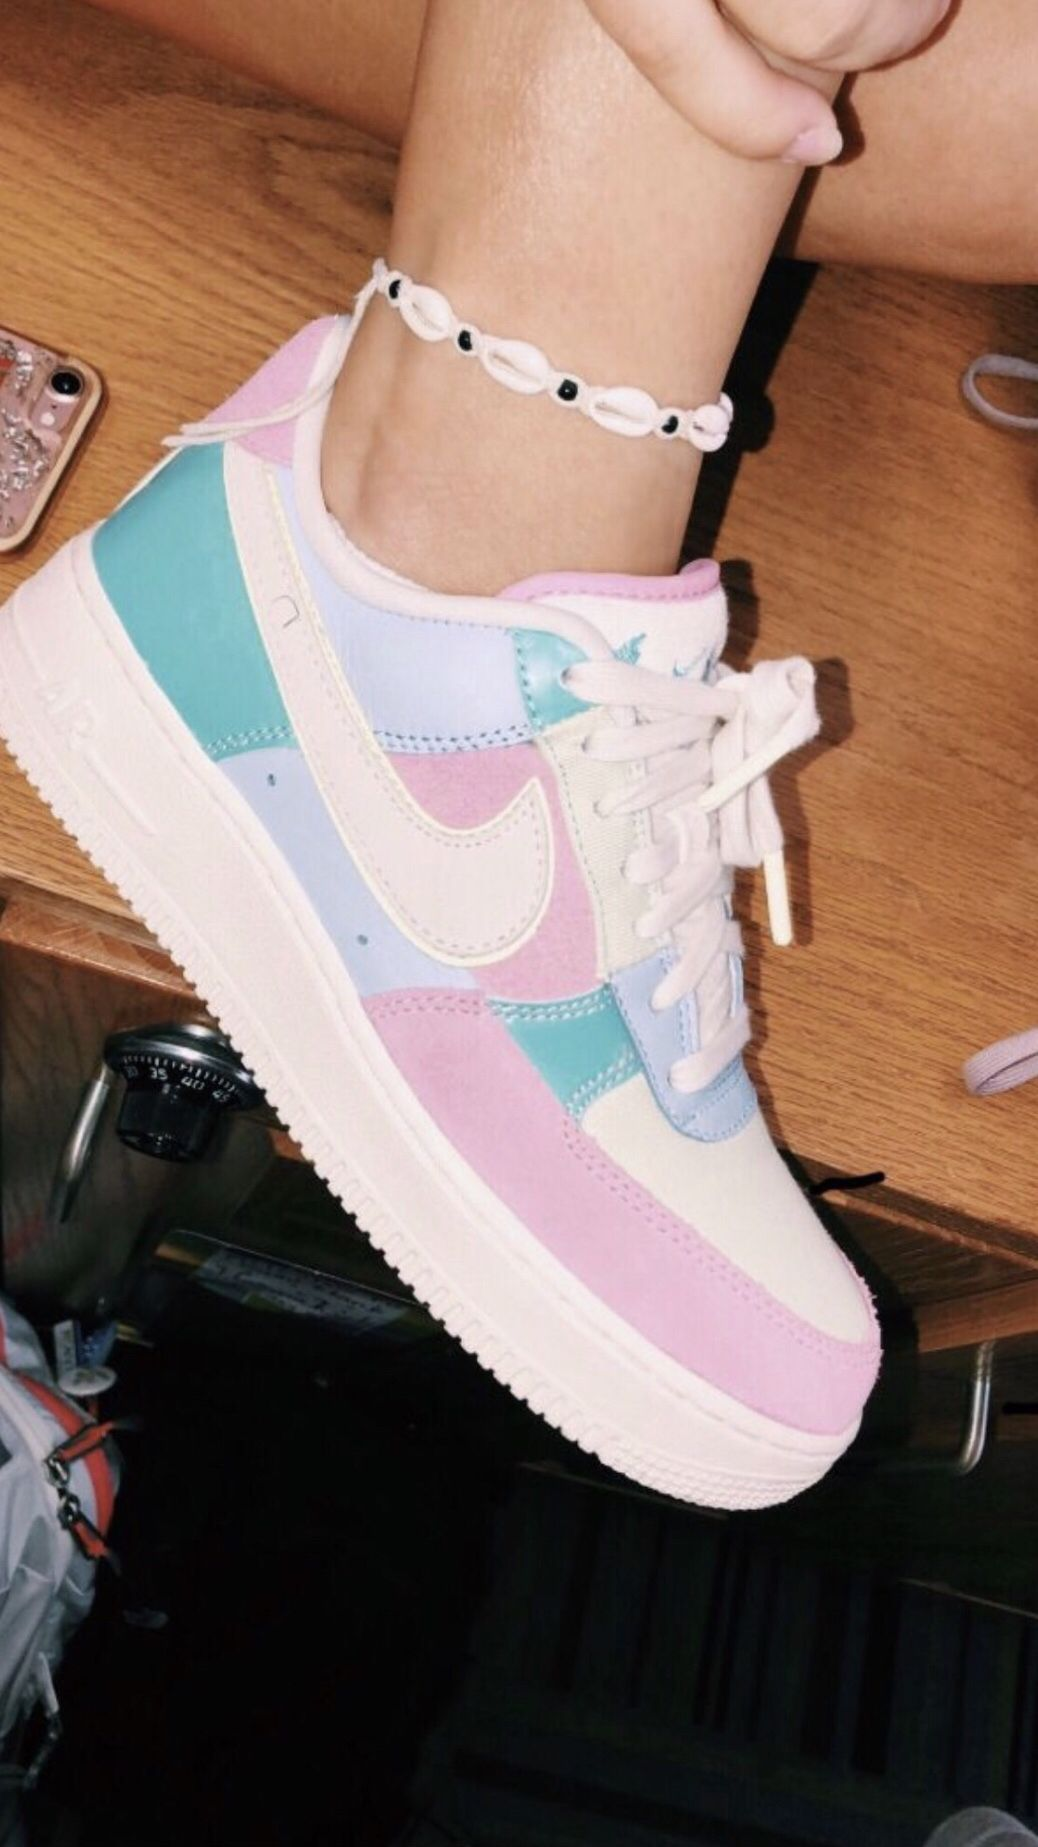 Pin by Emma Bullock on Kicks in 2020 | Everyday shoes